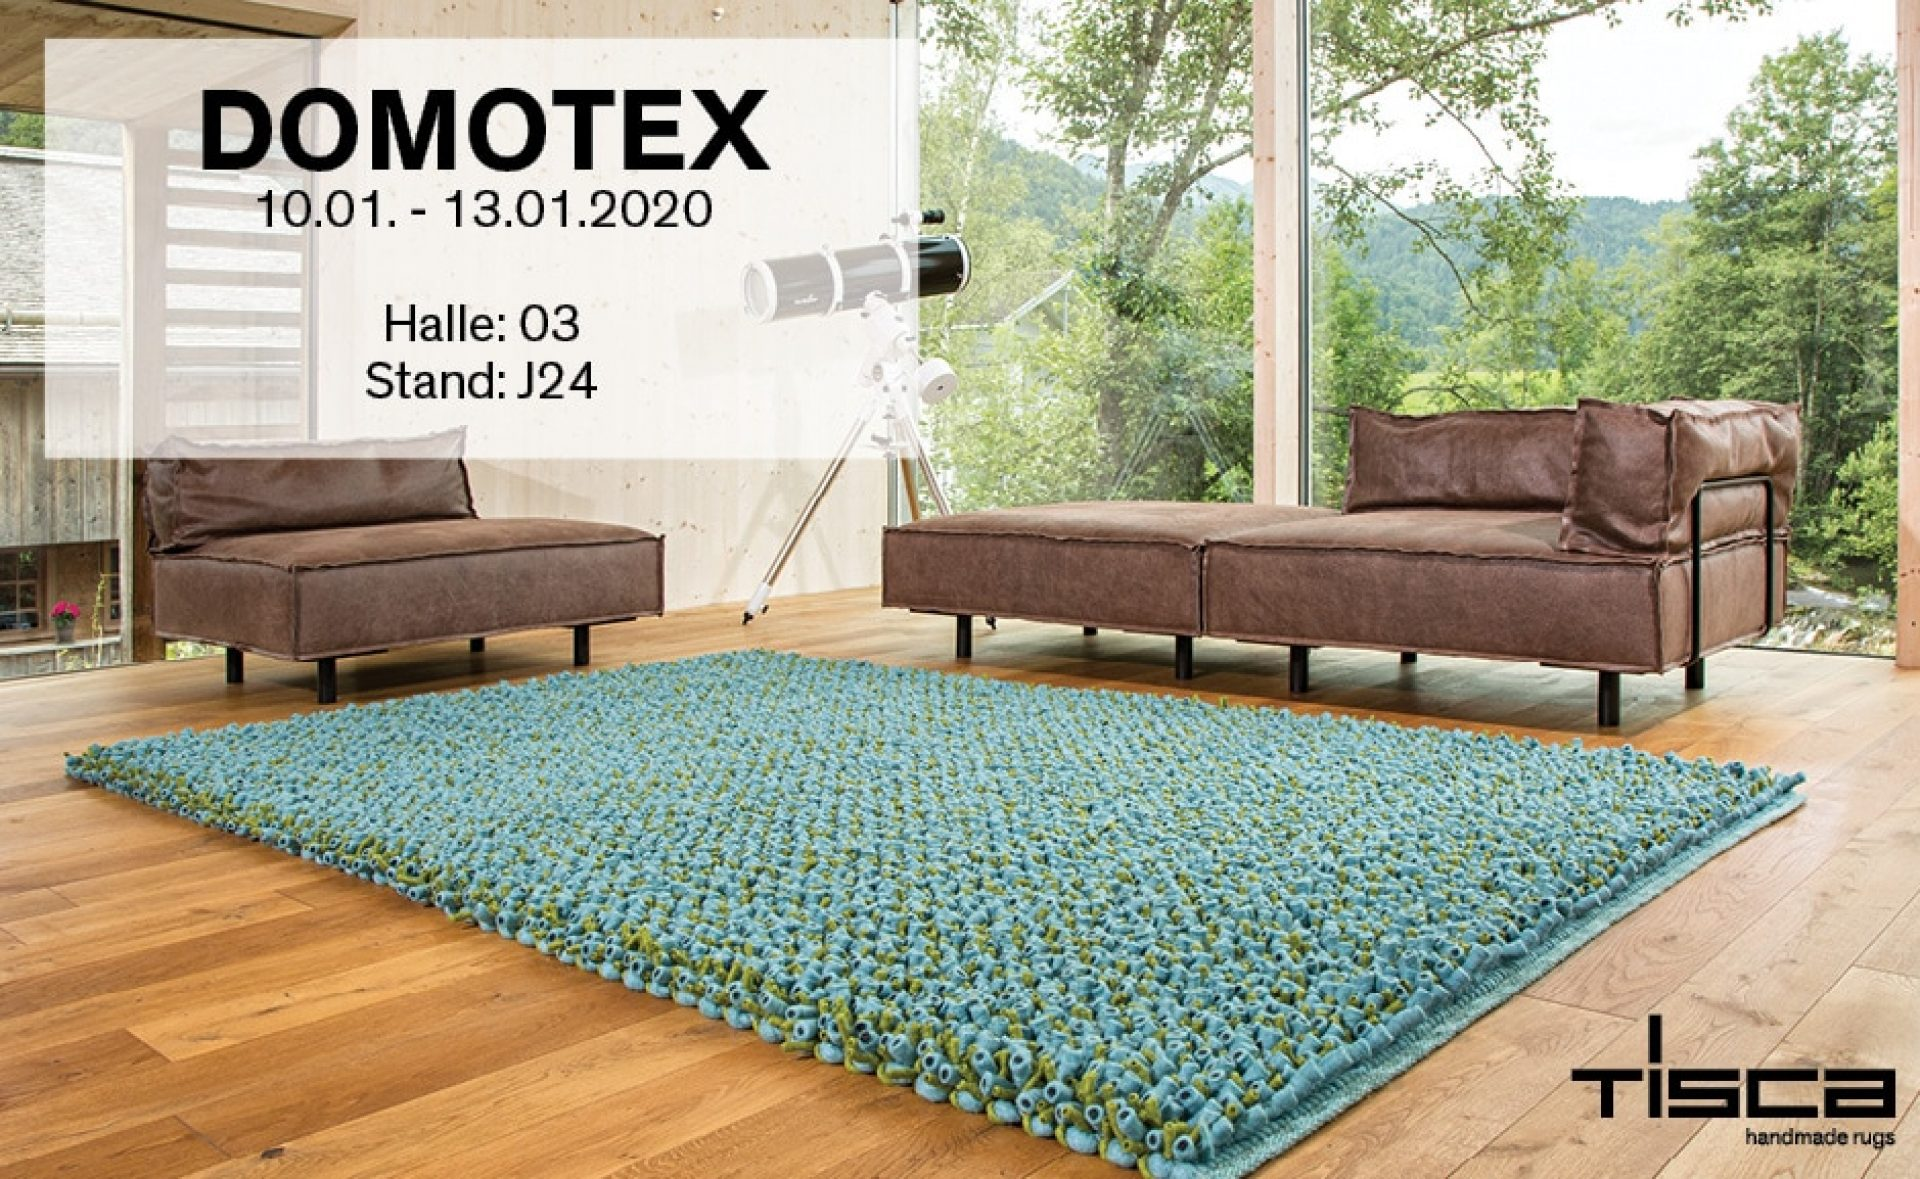 Domotex-2020-website